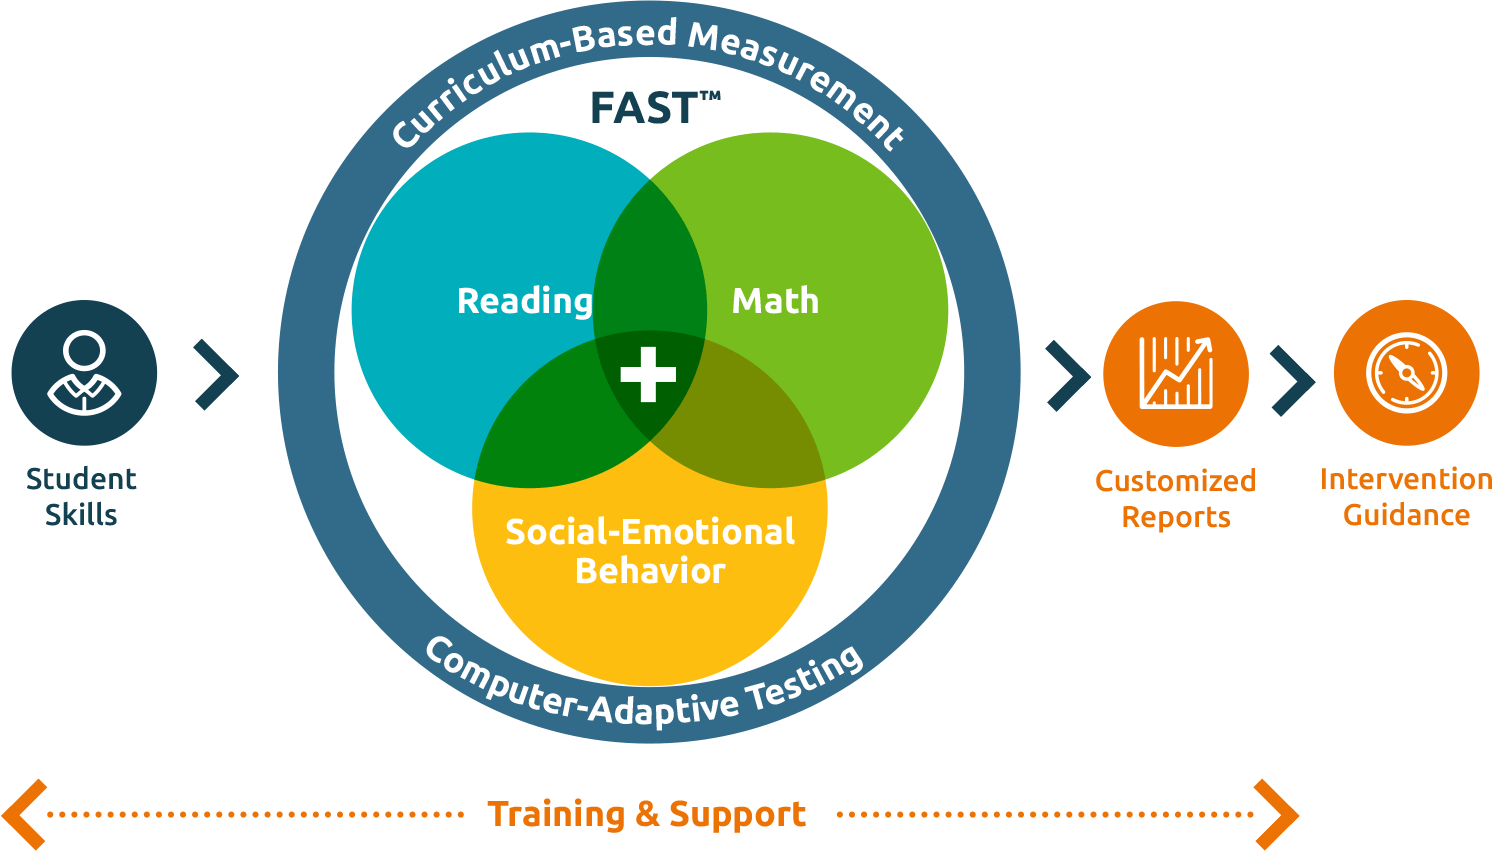 The FAST Approach - FastBridge Learning's Formative Assessments